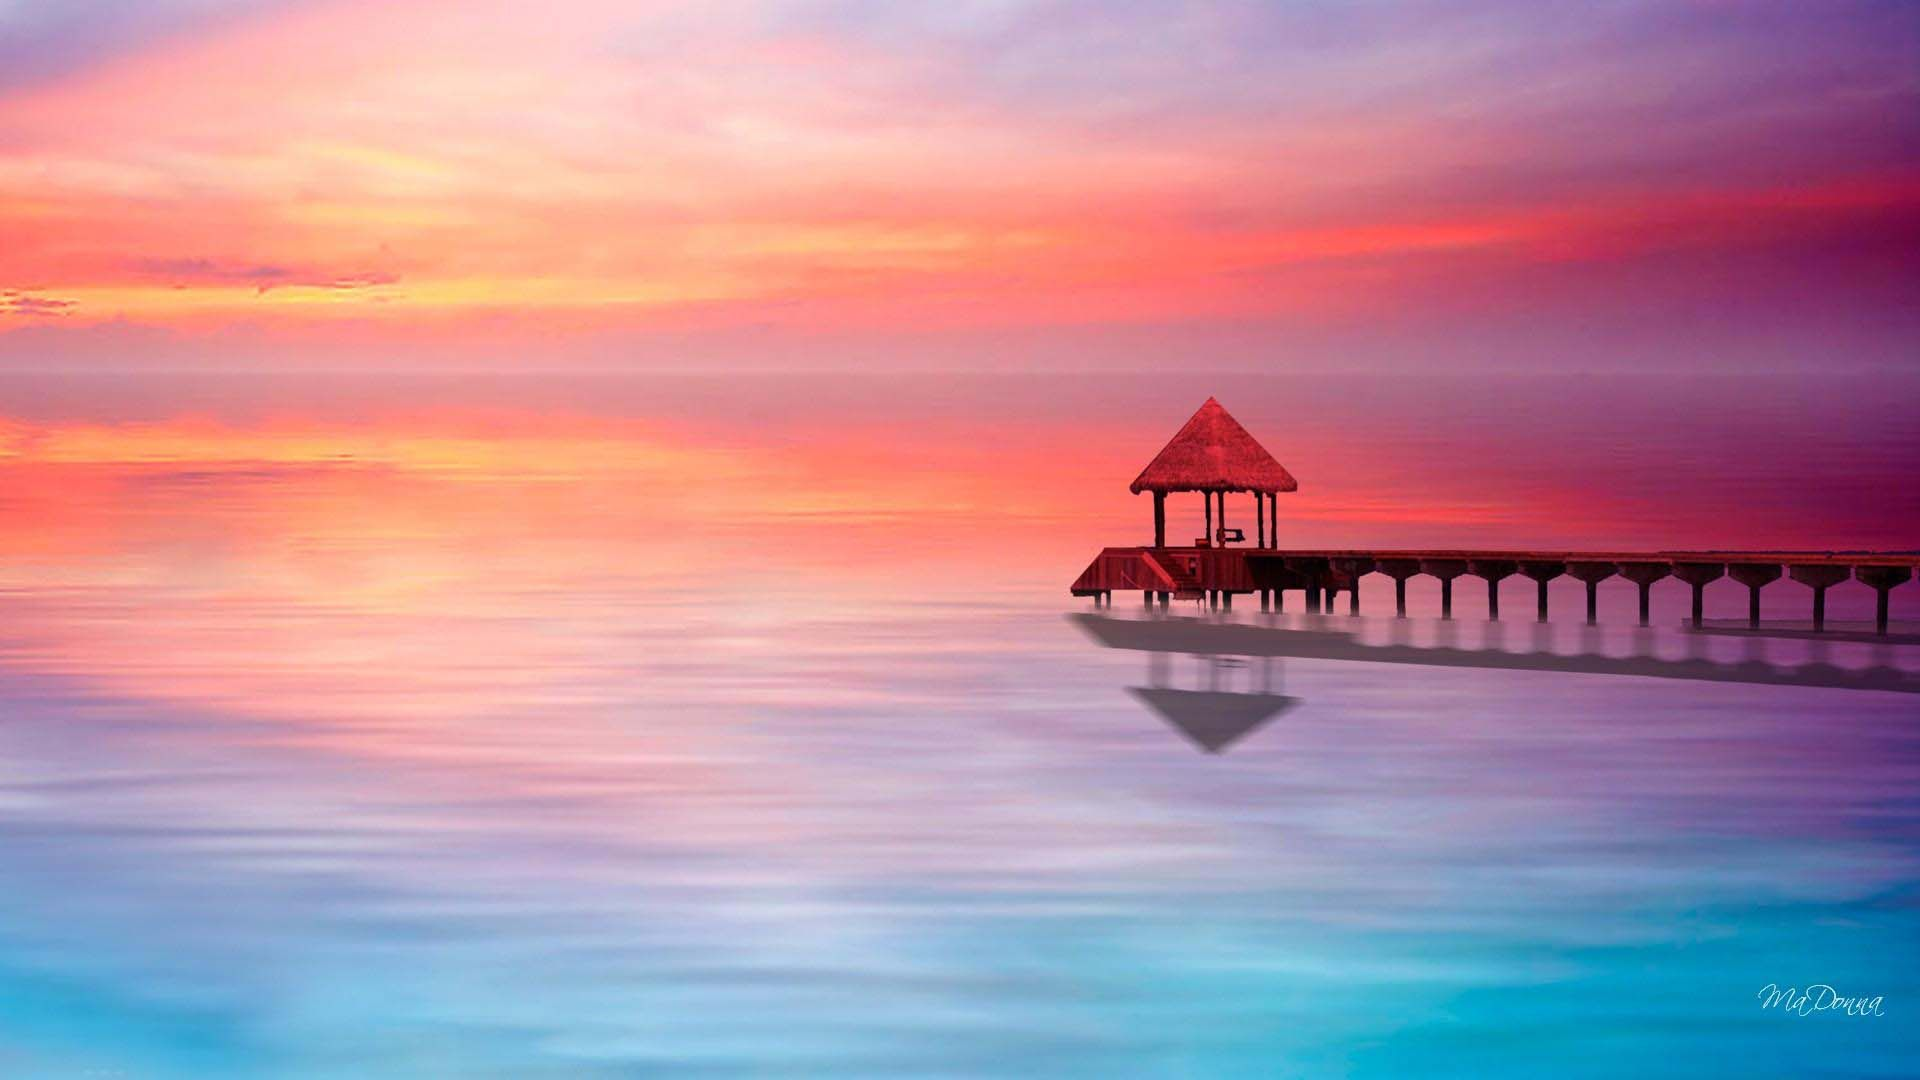 Pastel Sunset Desktop Wallpapers Top Free Pastel Sunset Desktop Backgrounds Wallpaperaccess